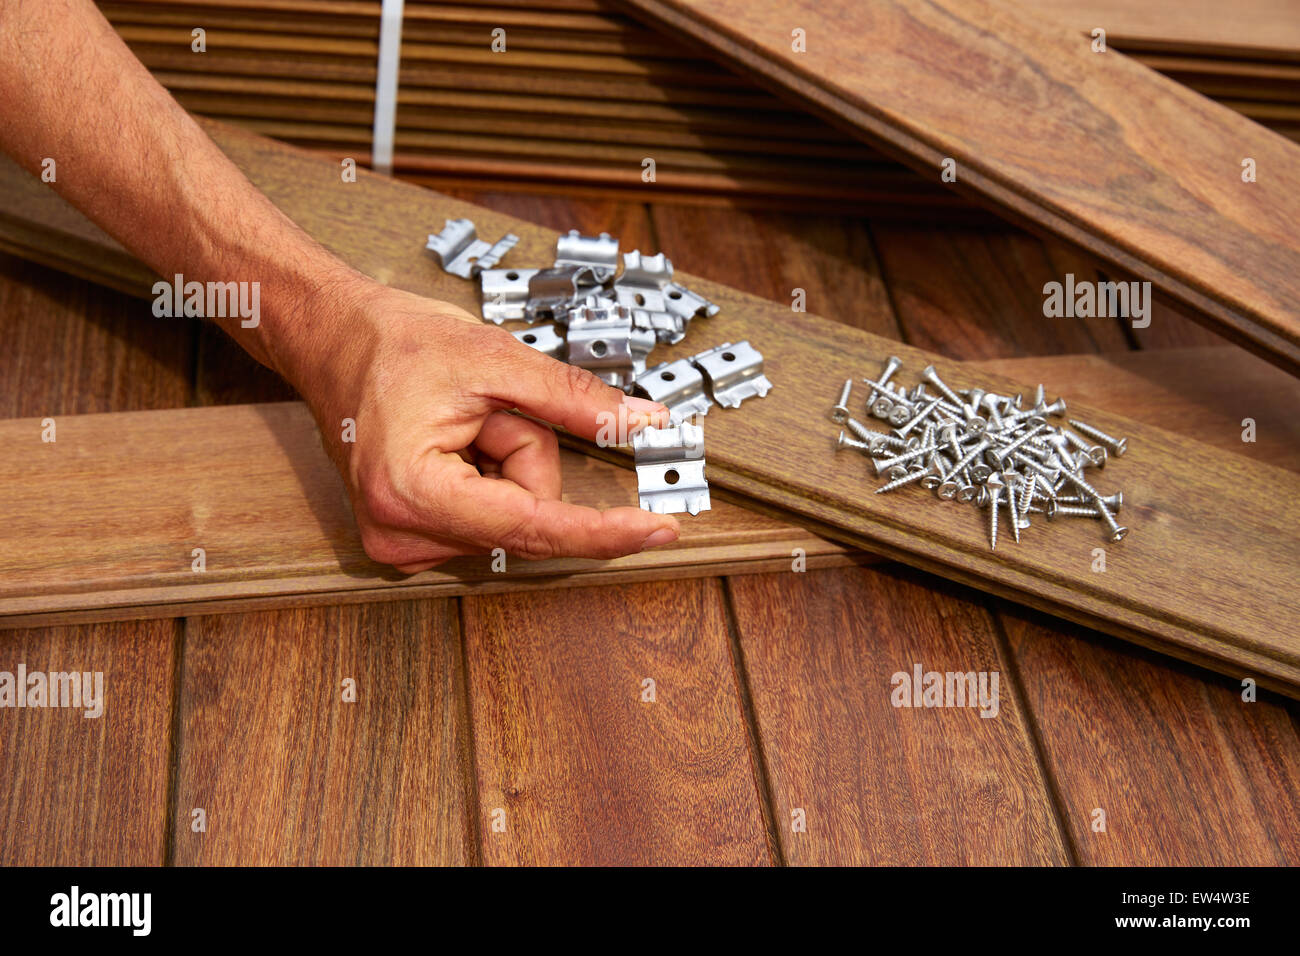 Ipe decking deck wood installation screws clips and fasteners - Stock Image